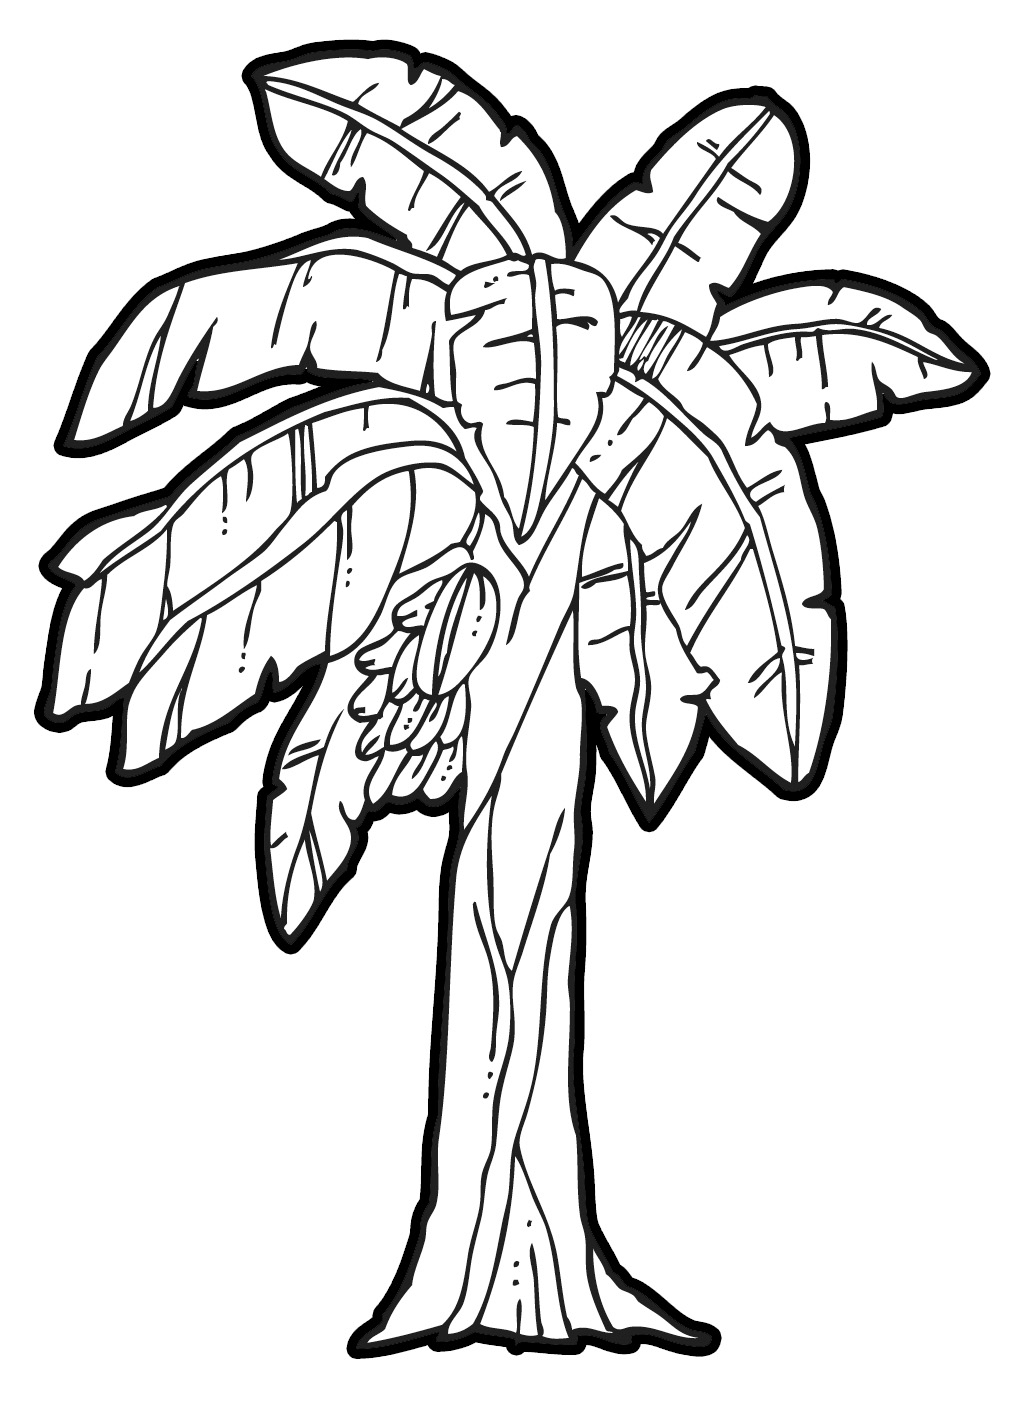 Banana clipart outline. Drawing of a tree